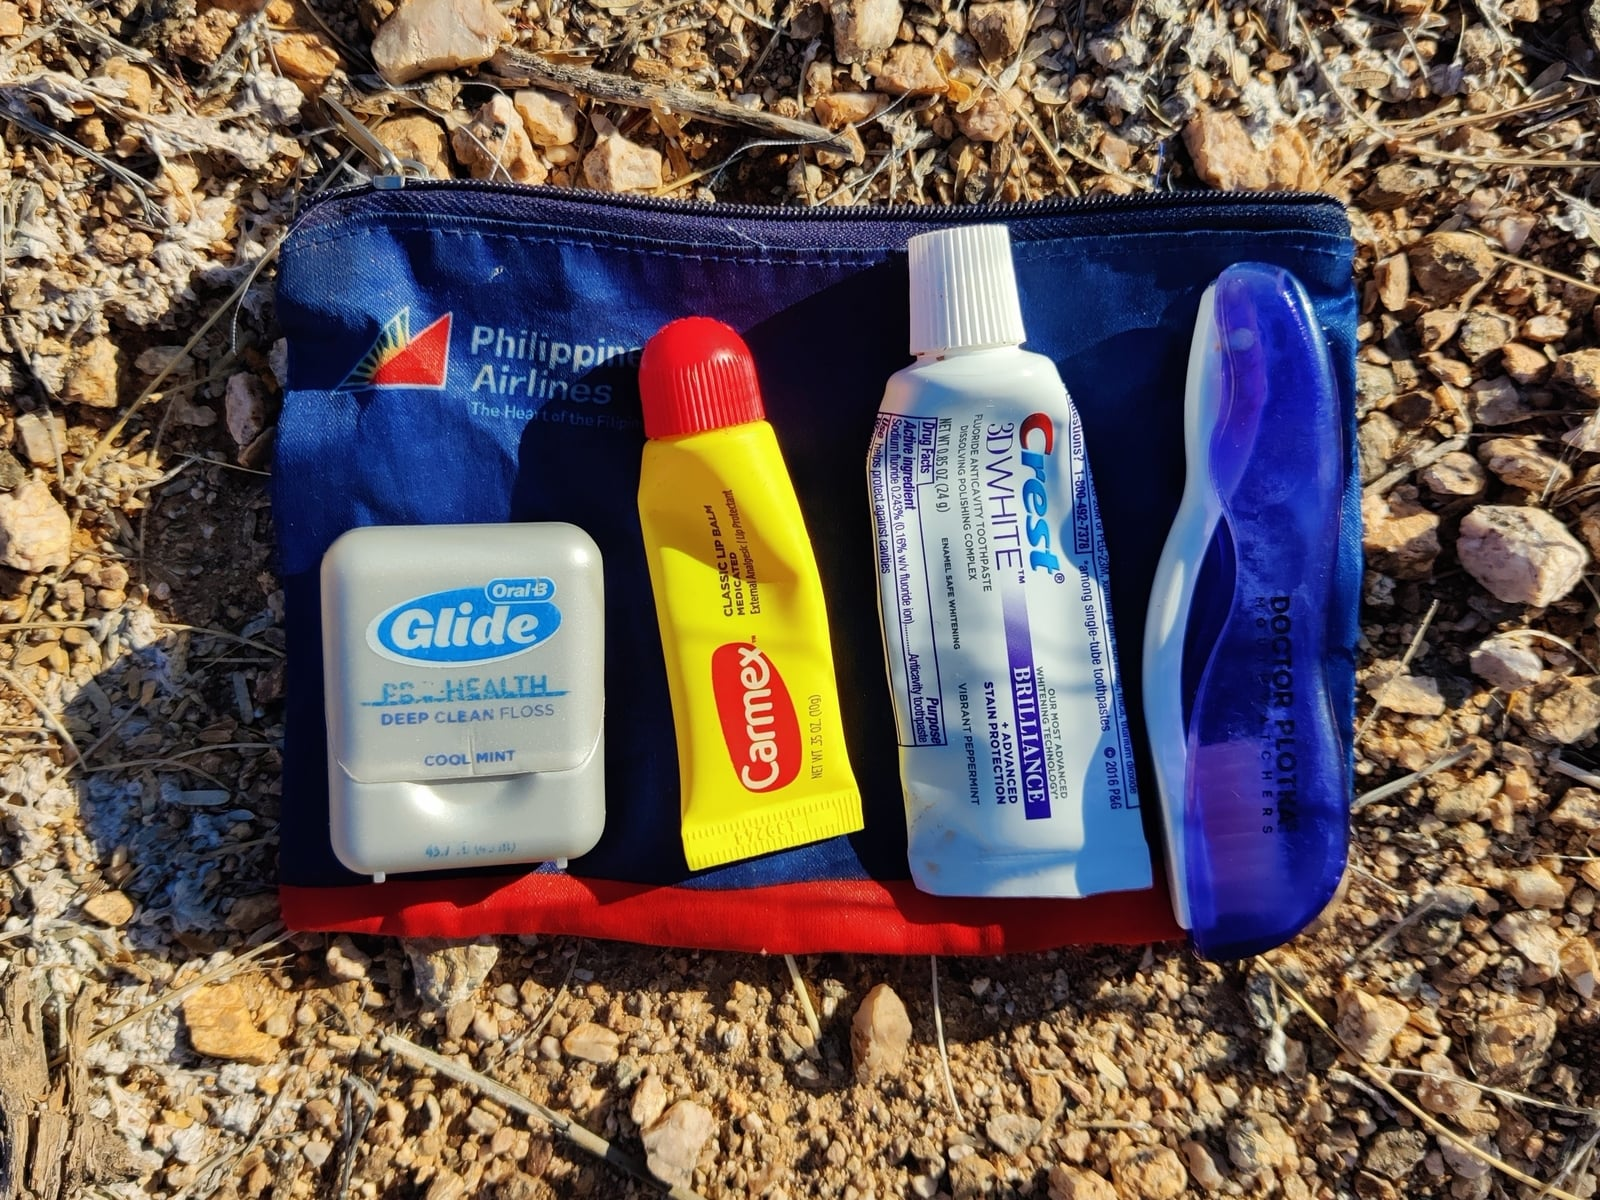 Travel size toothbrush, paste, floss, and lip balm for backpacking